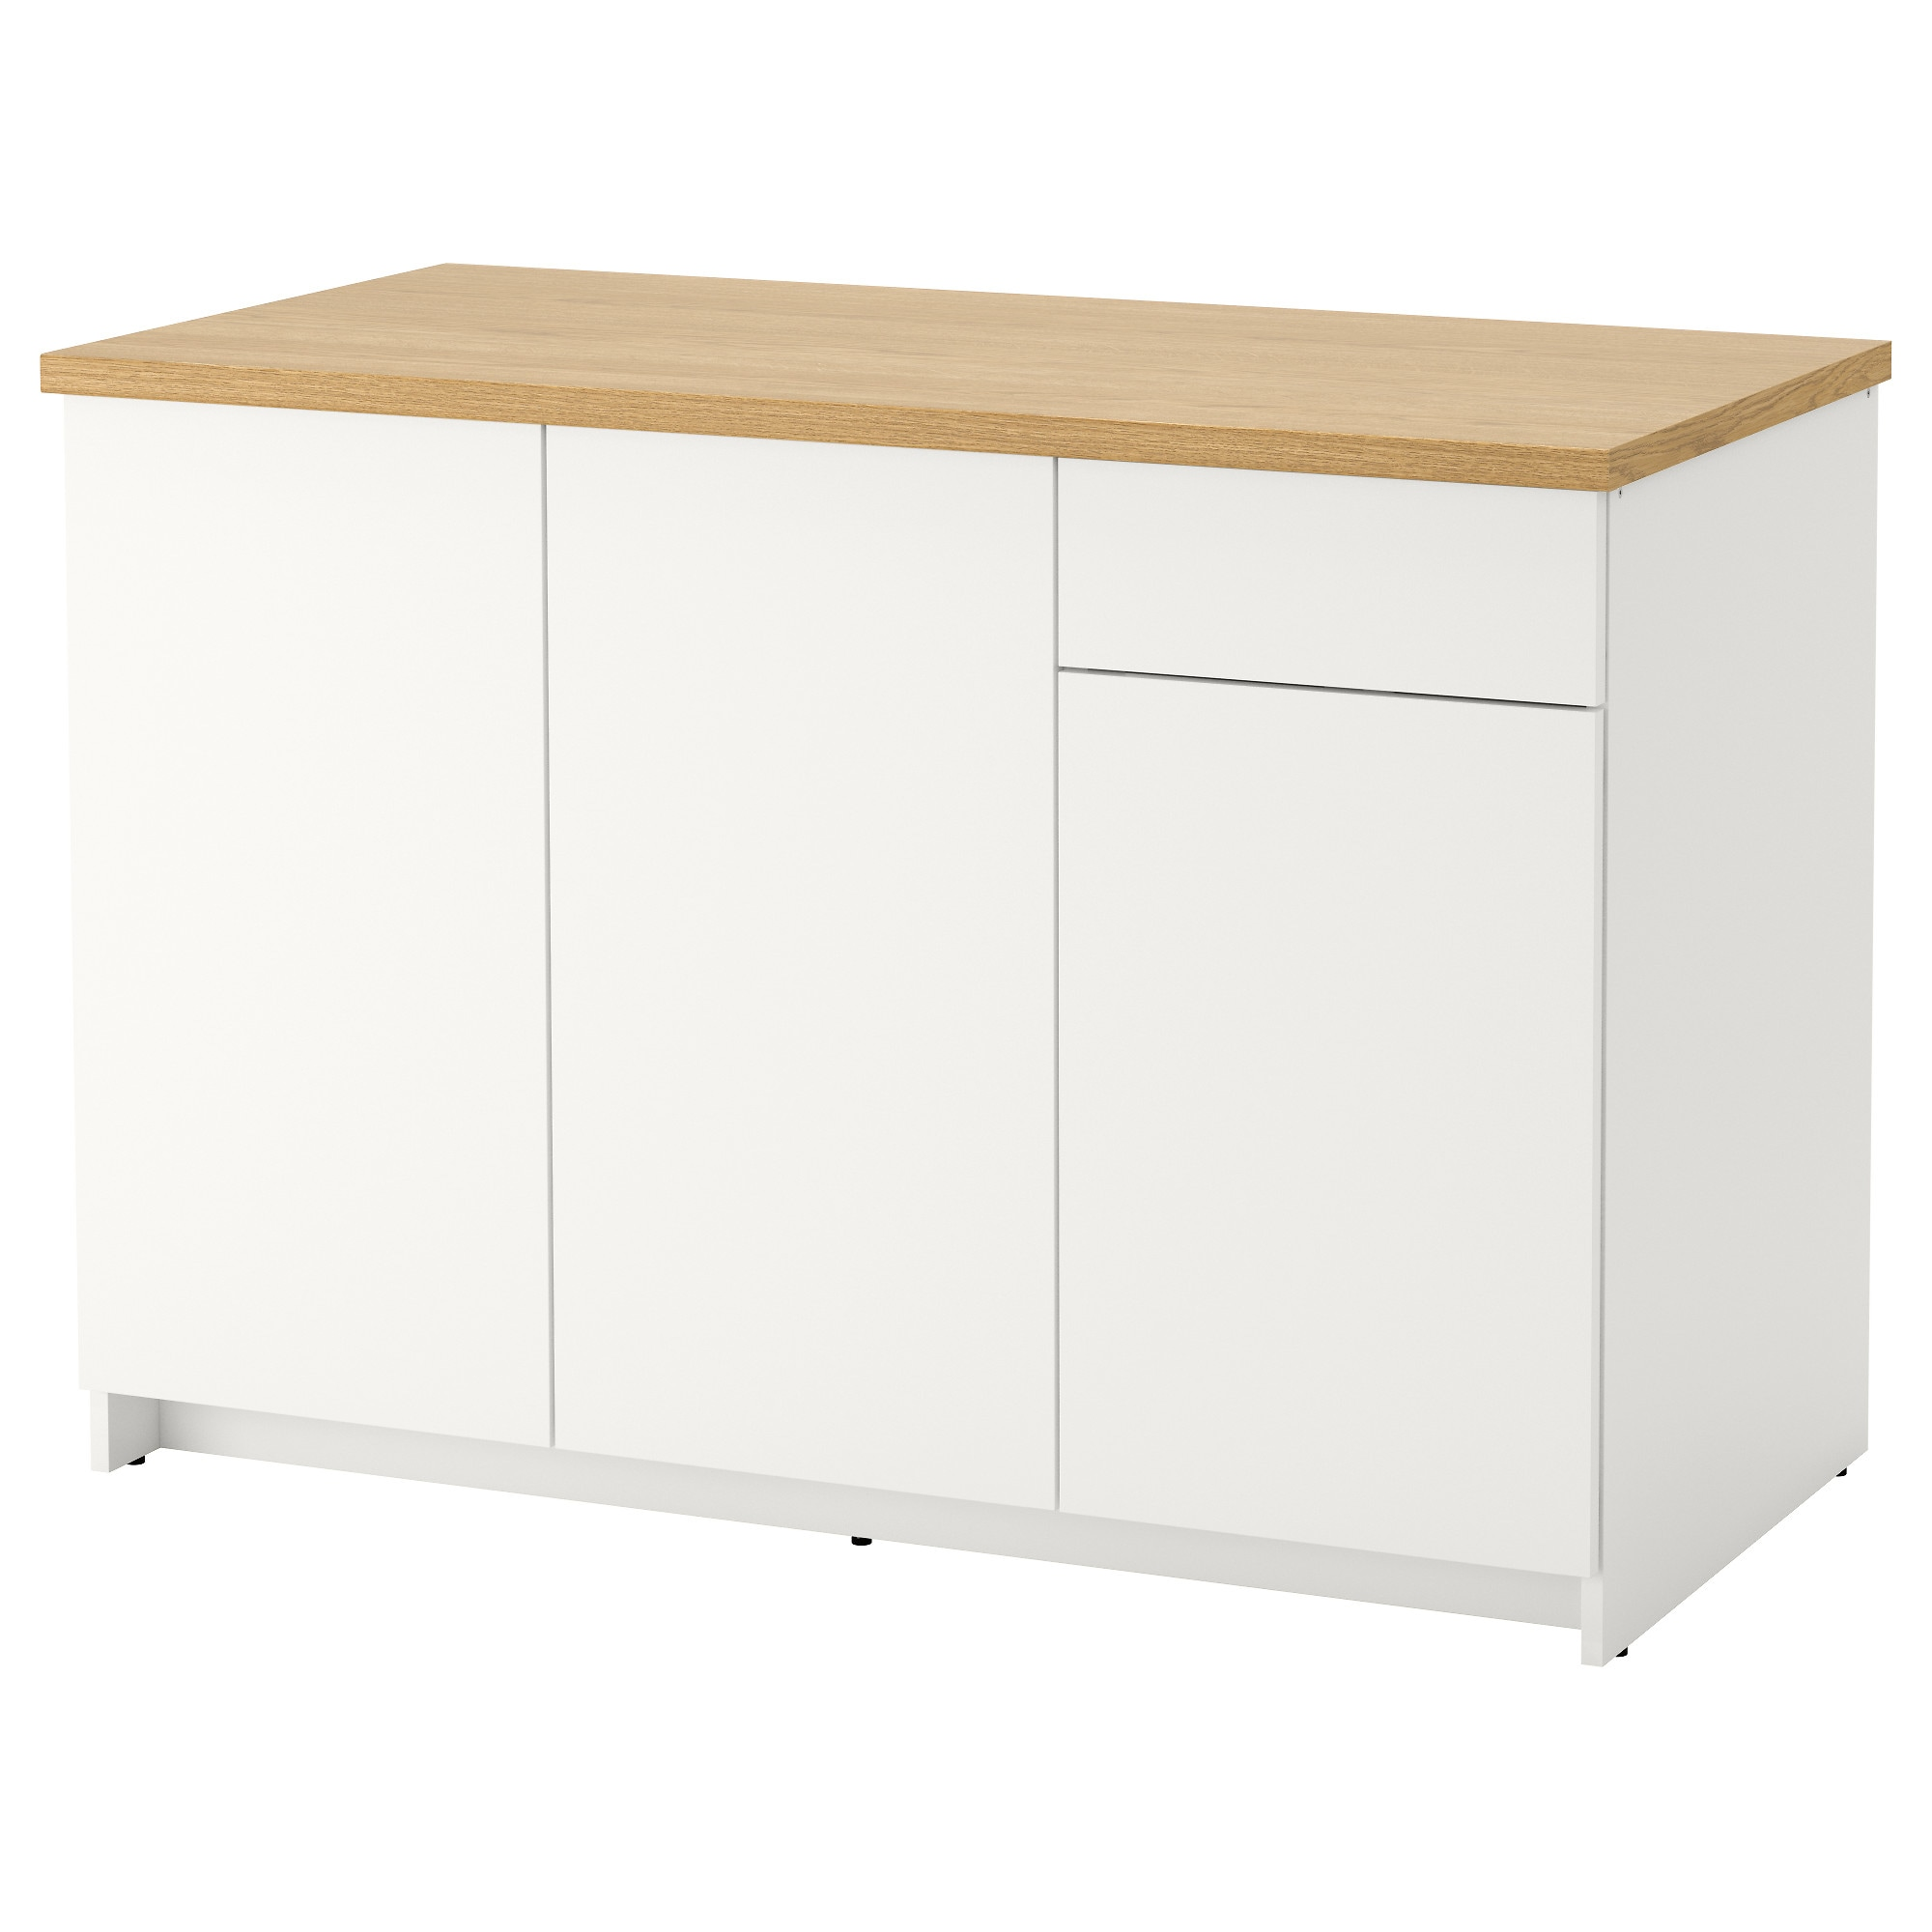 Kitchen cabinet drawer length - Knoxhult Base Cabinet With Doors And Drawer White Worktop Length 122 0 Cm Width